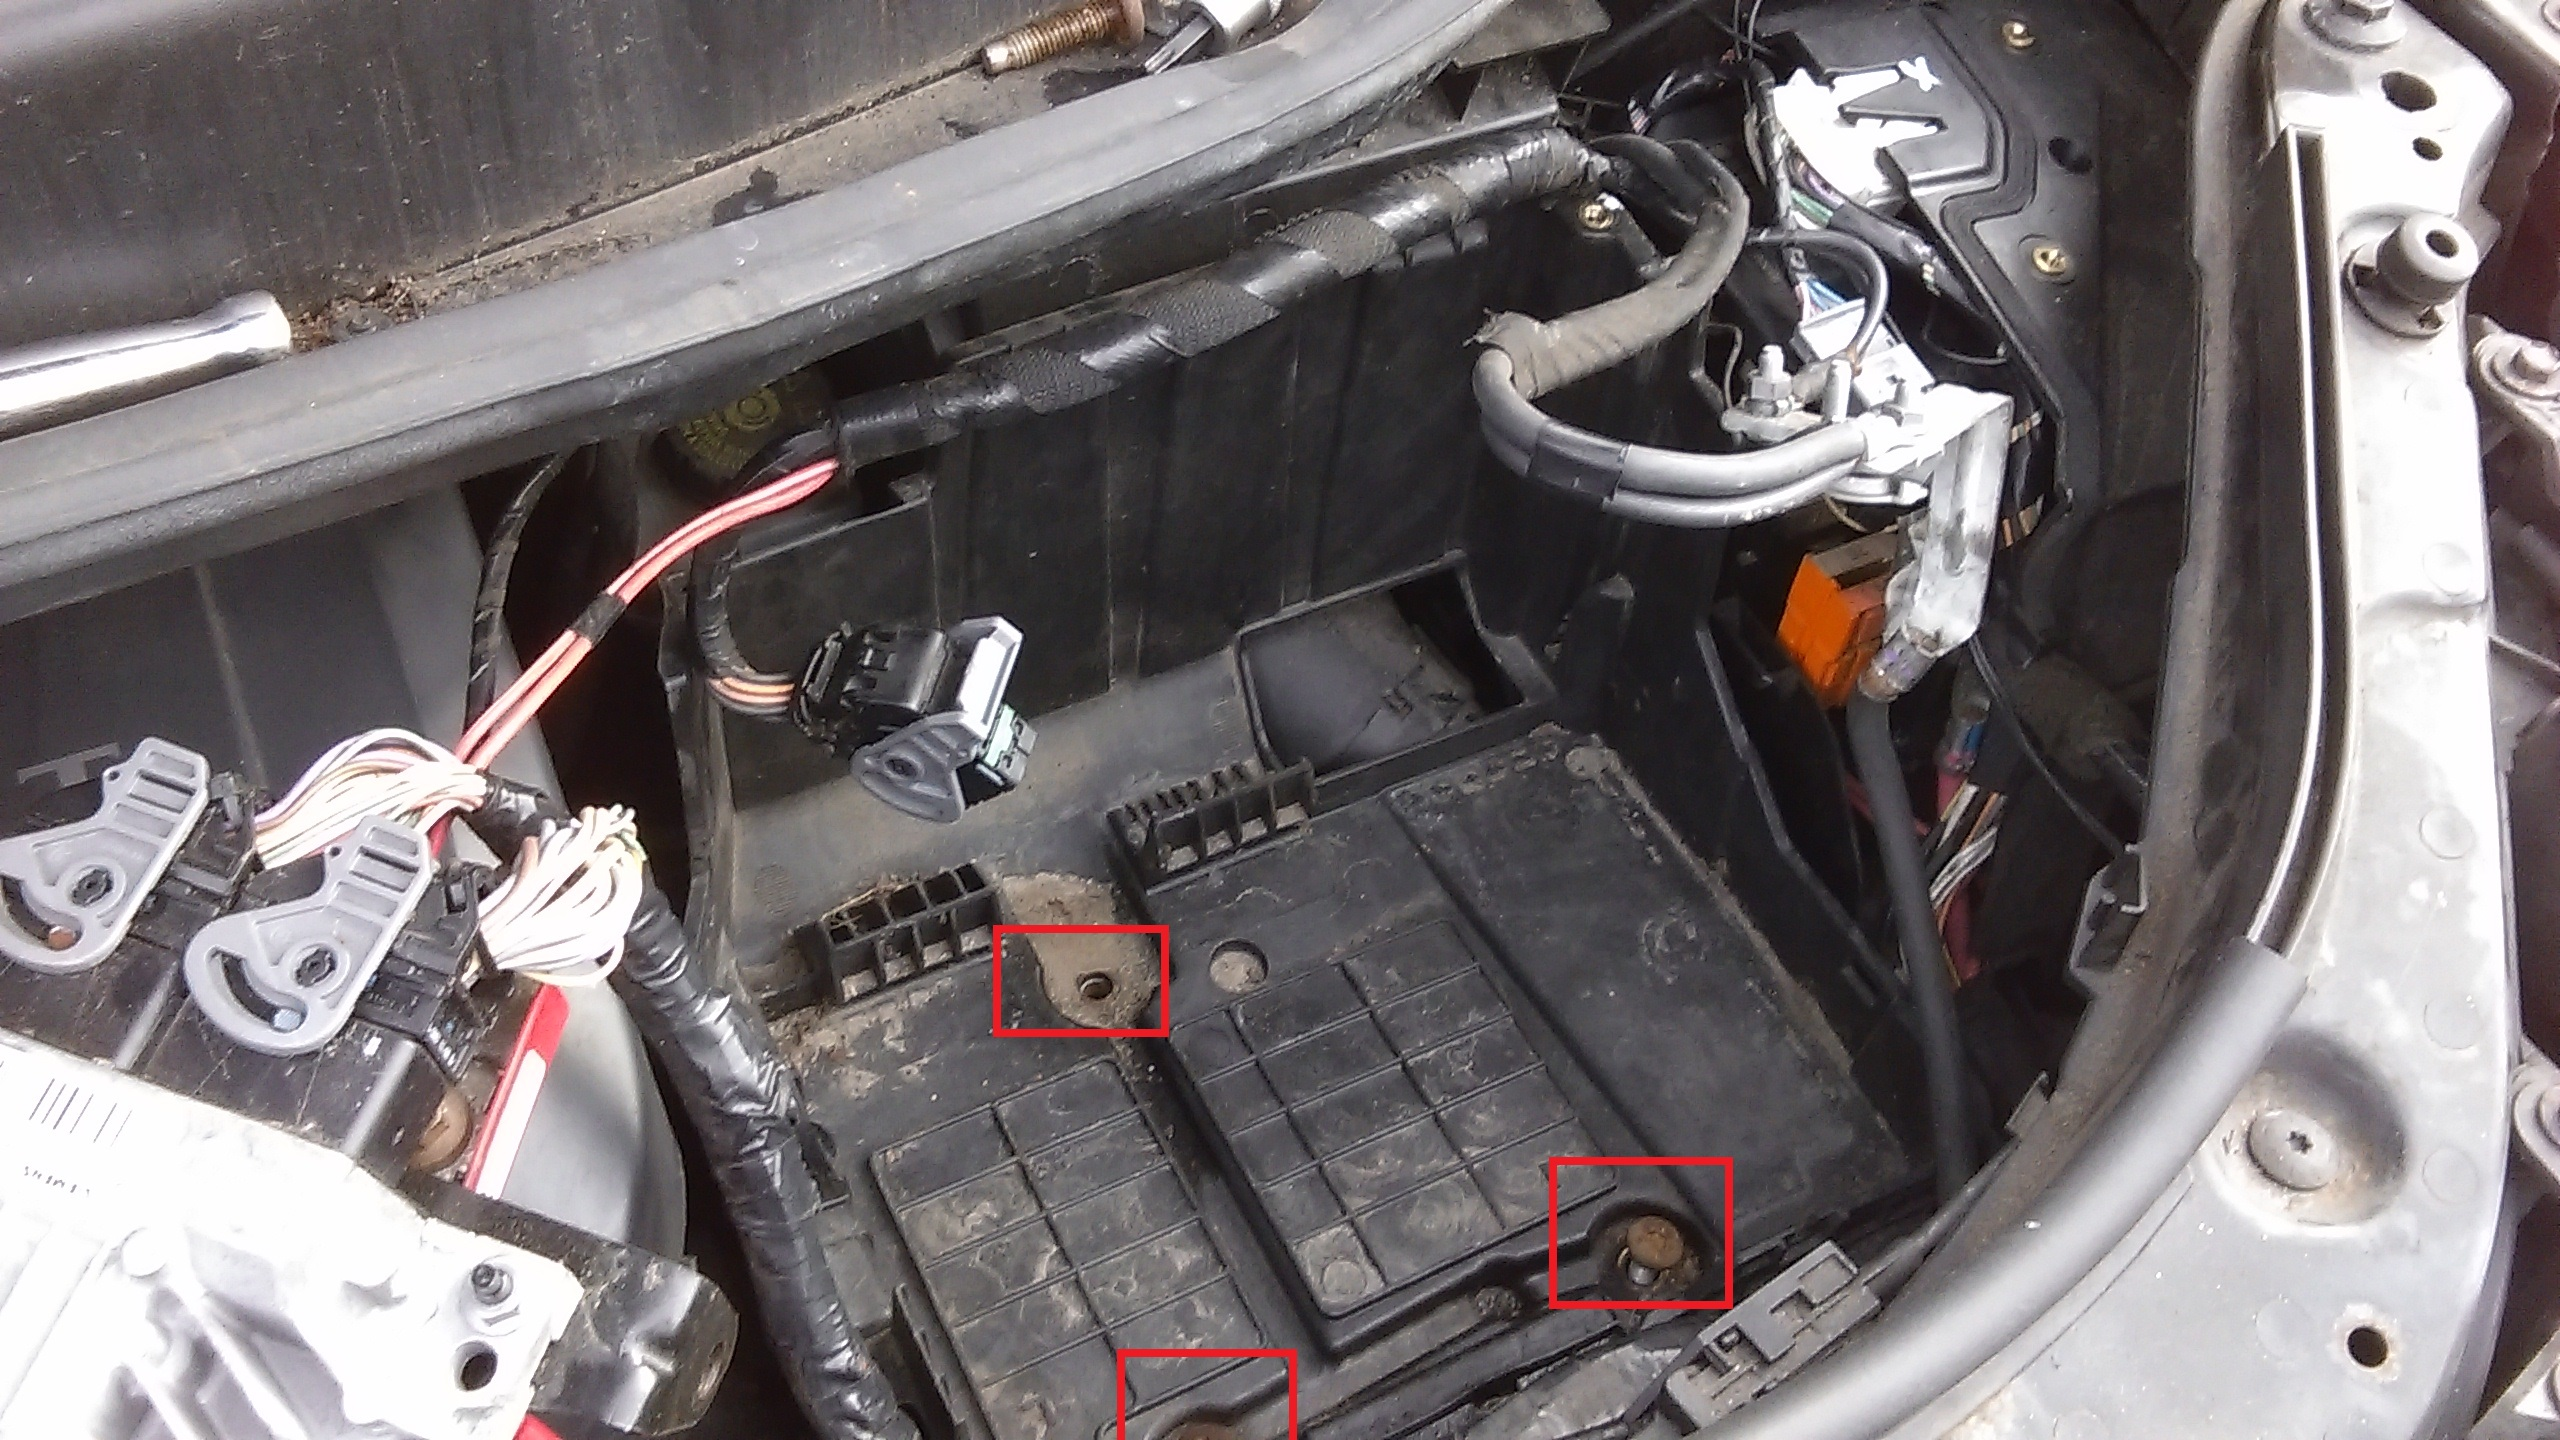 Renault Grand Scenic Engine Fusebox Access Javalinss Blog Car Fuse Box Purpose The Will Now Carefully Pull Out Into Battery Tray Space Unclip Connectors On Top Youll Need To Undo Bolt Holding Three Live Feed